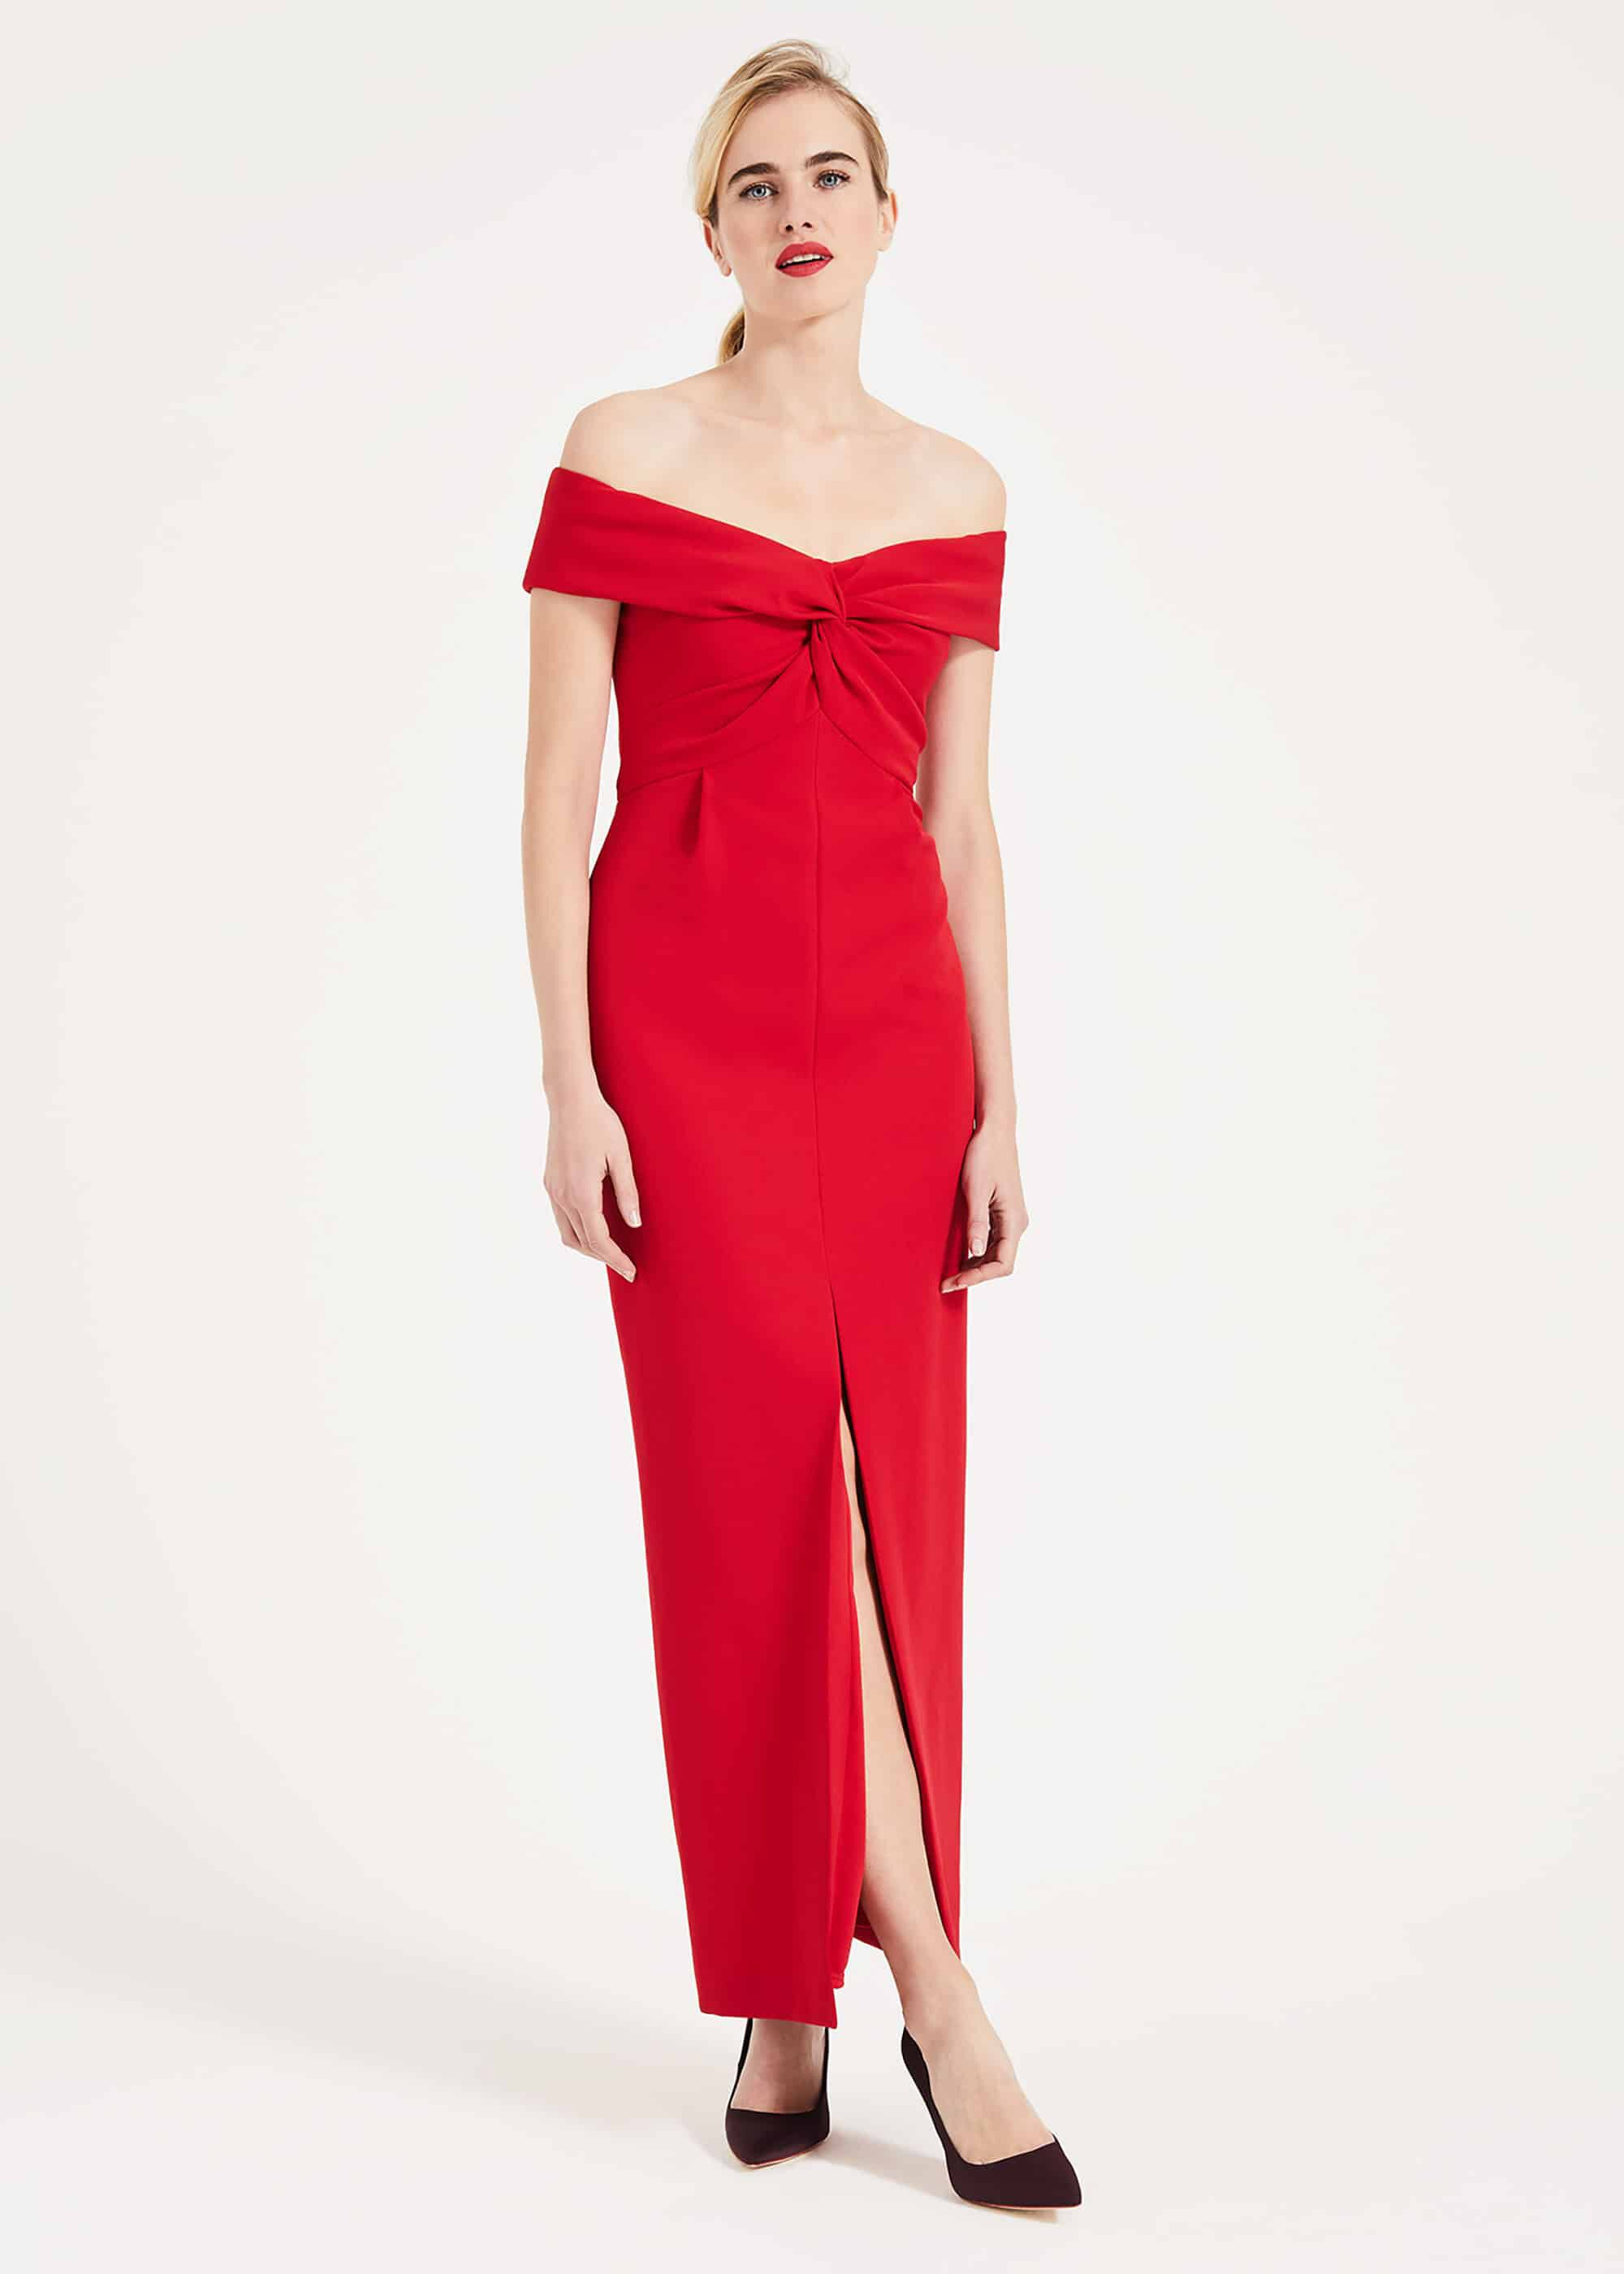 Phase Eight Marcelina Twist Maxi Dress, Red, Fitted